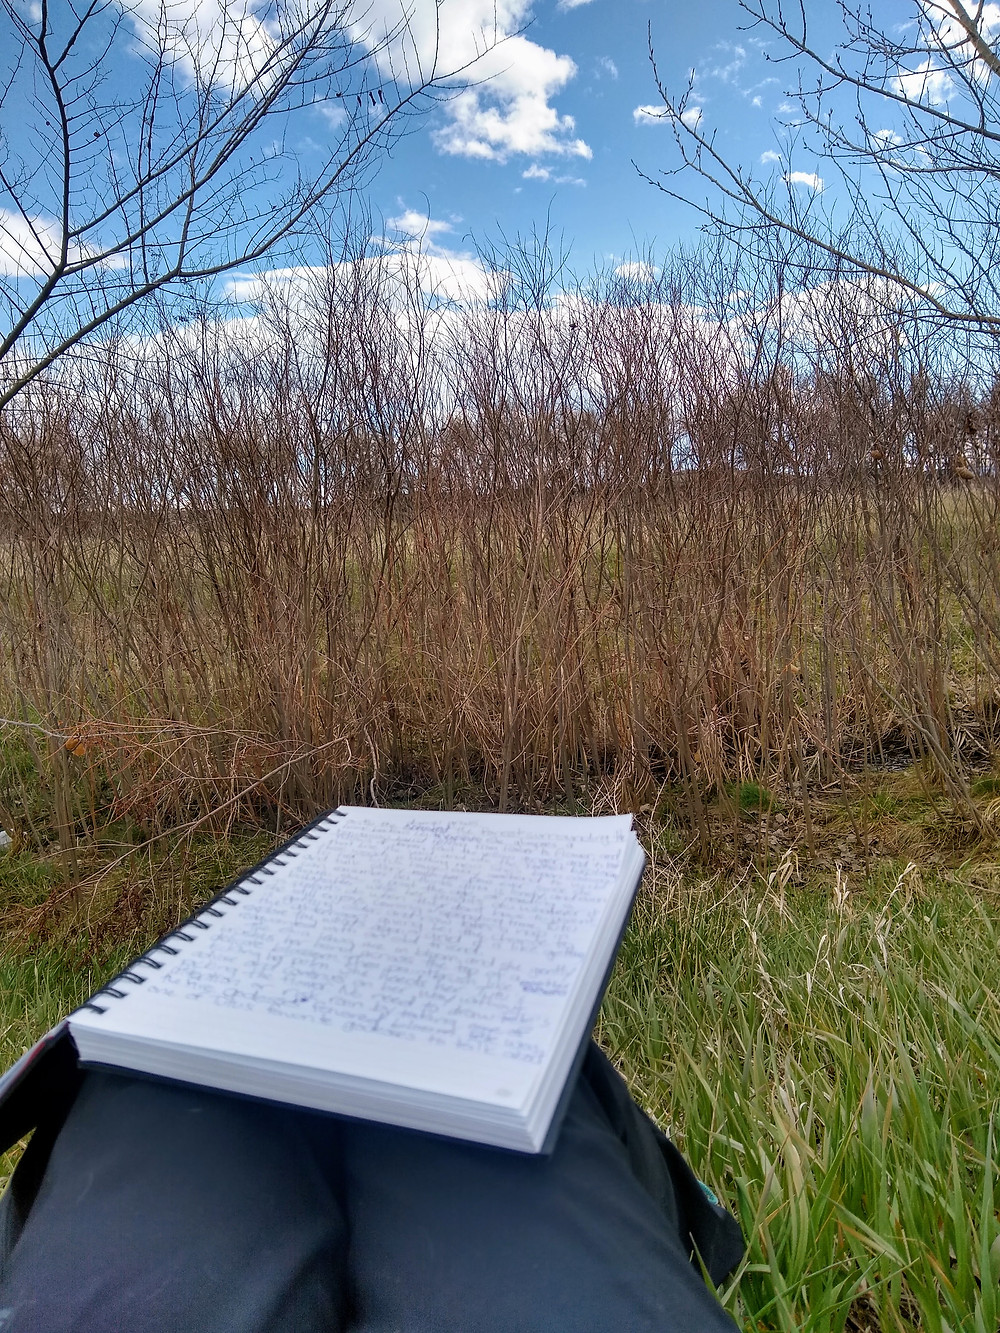 In the open space near some bushes with my writing pad